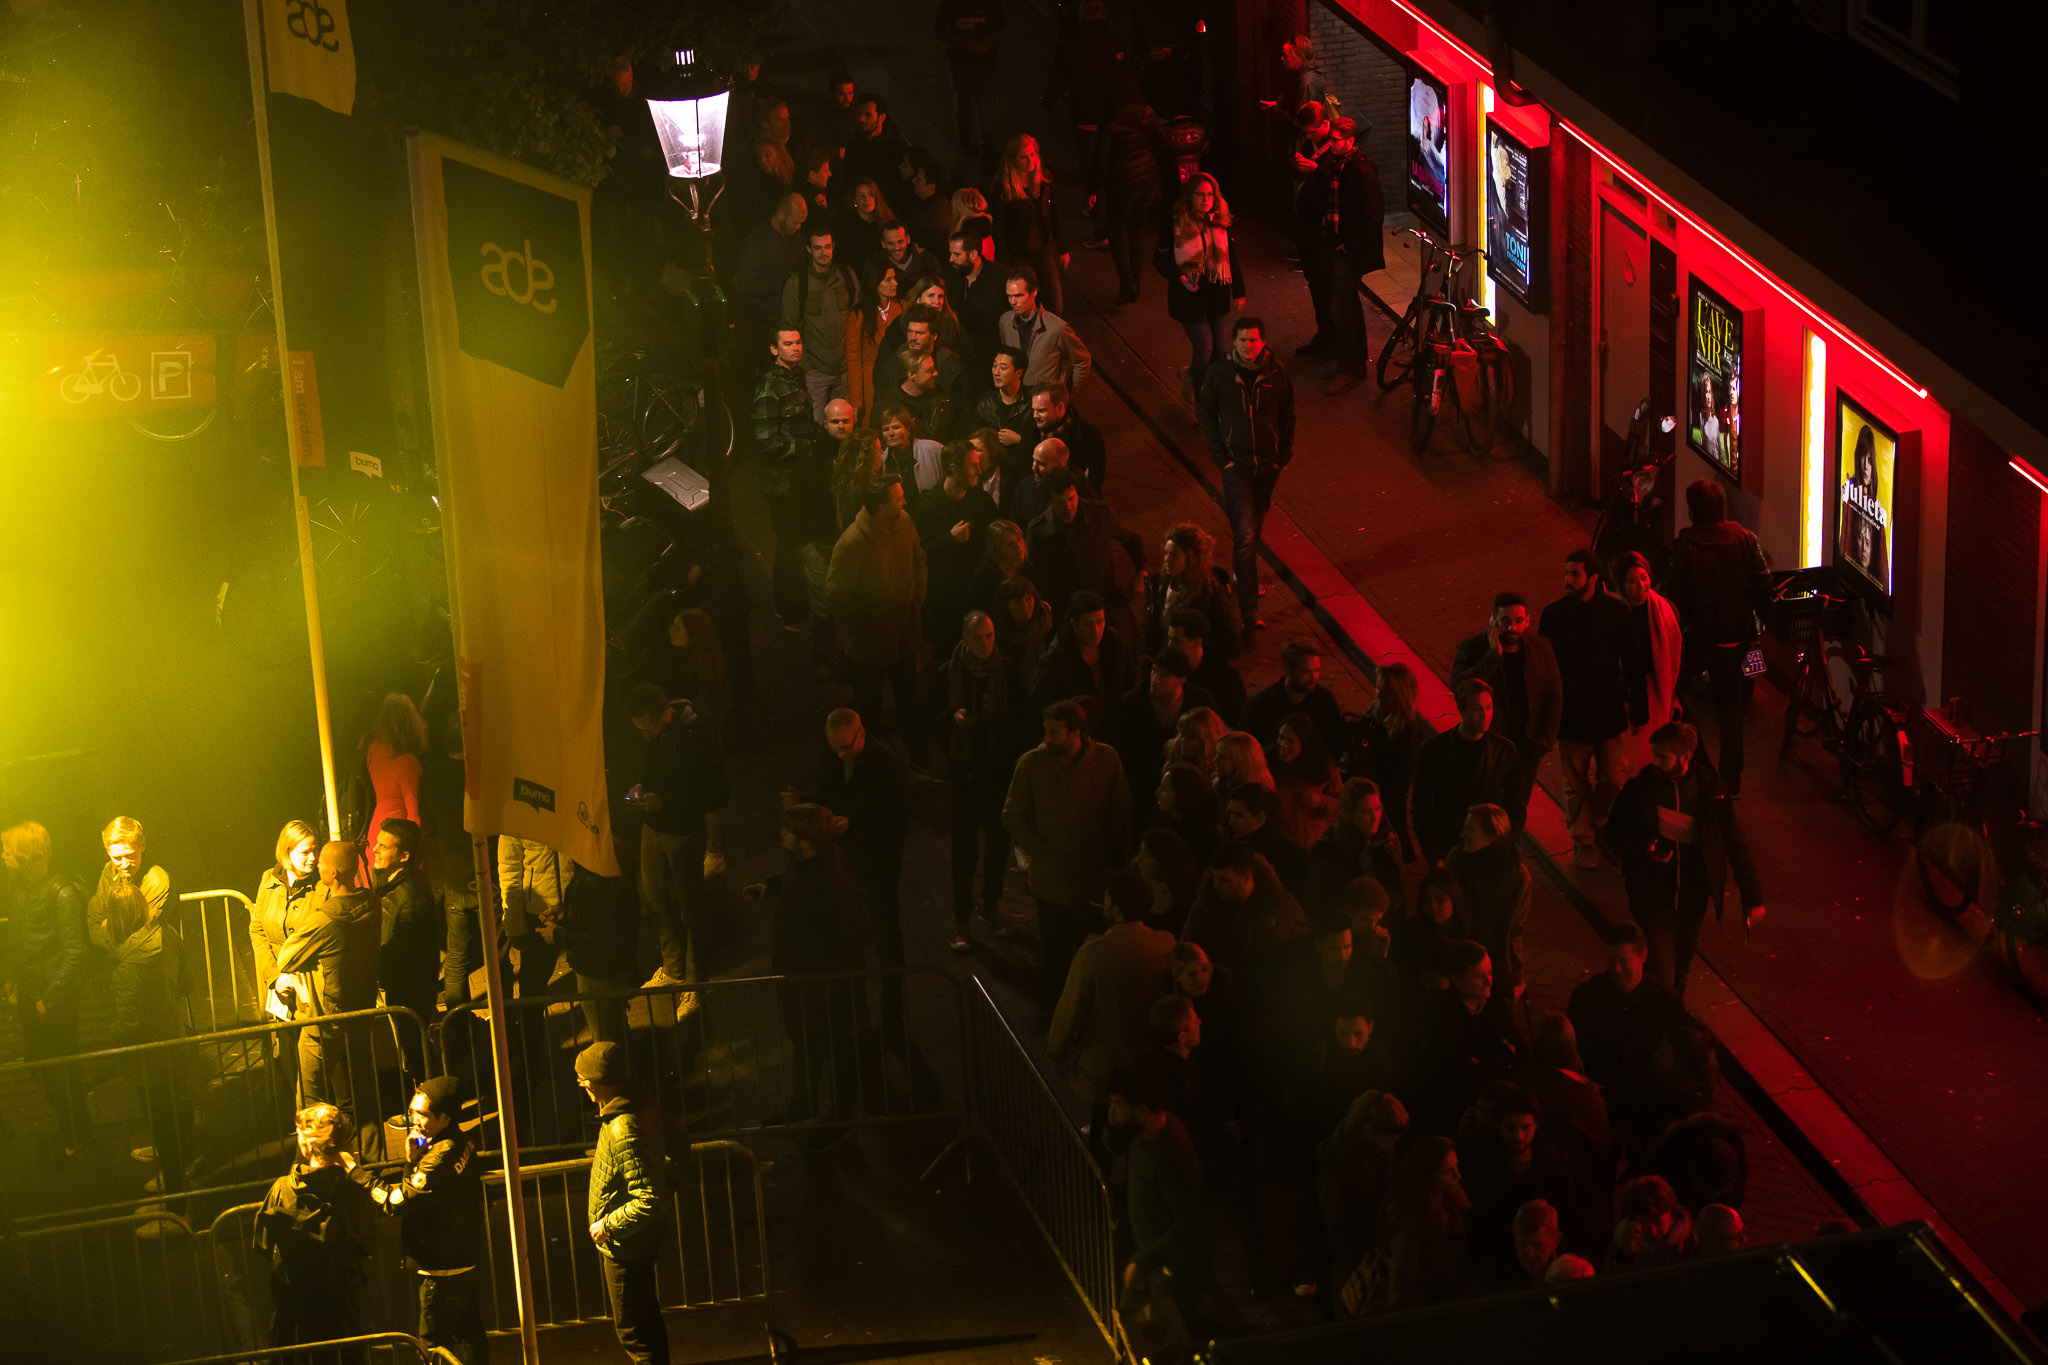 The scene outside Melkweg & Sugarfactory was nothing compared to the madness happening within. | Photo:tomdomscom